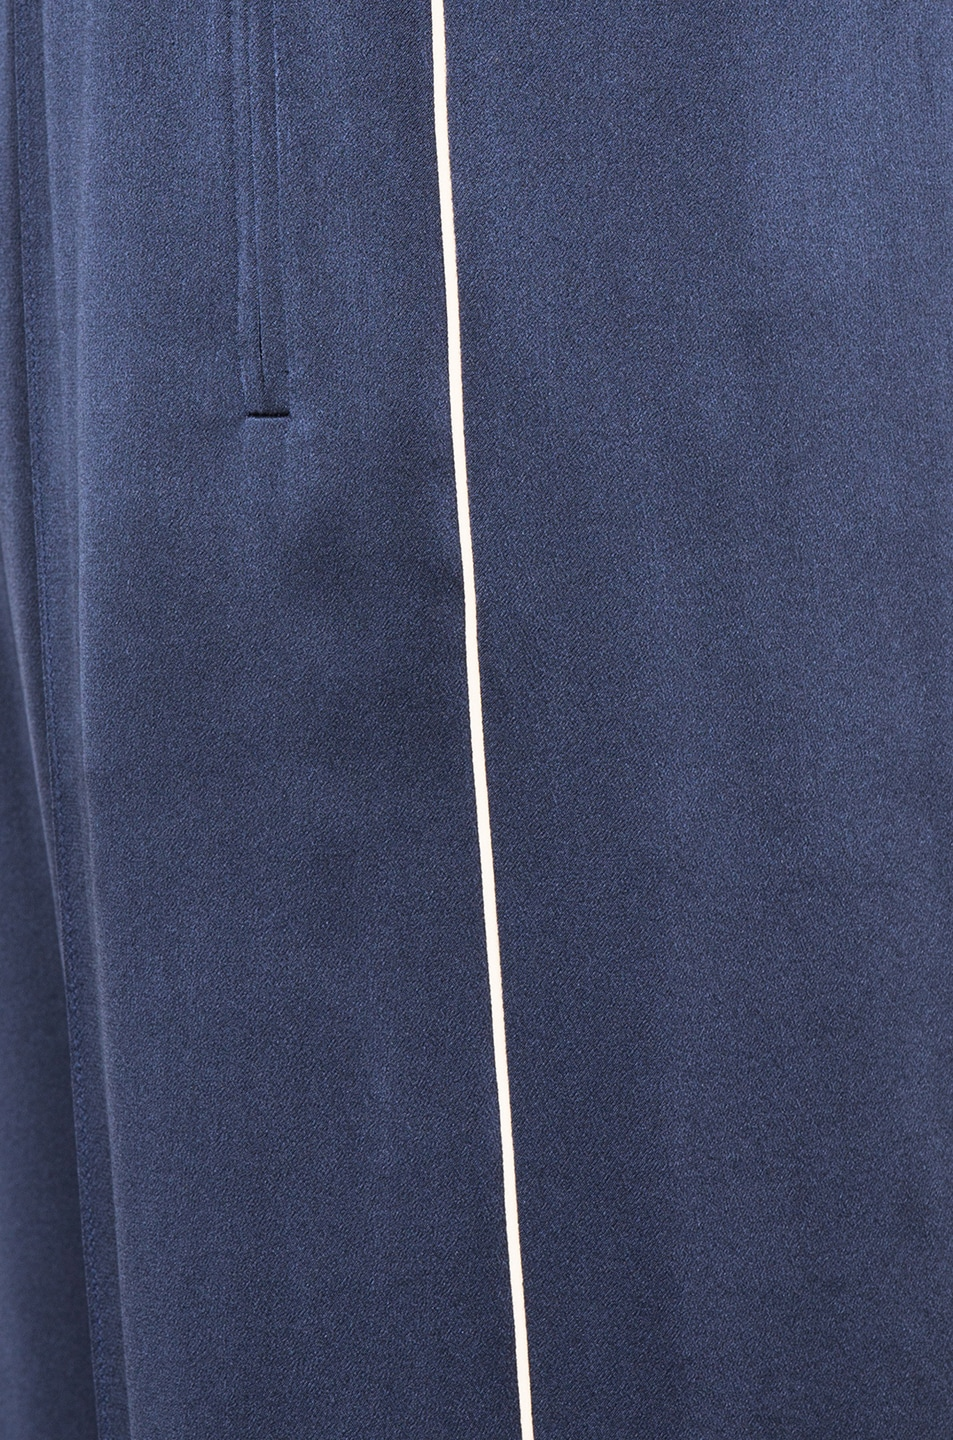 Image 5 of Chloe Crepe Envers Satin Trousers in Ocean Blue